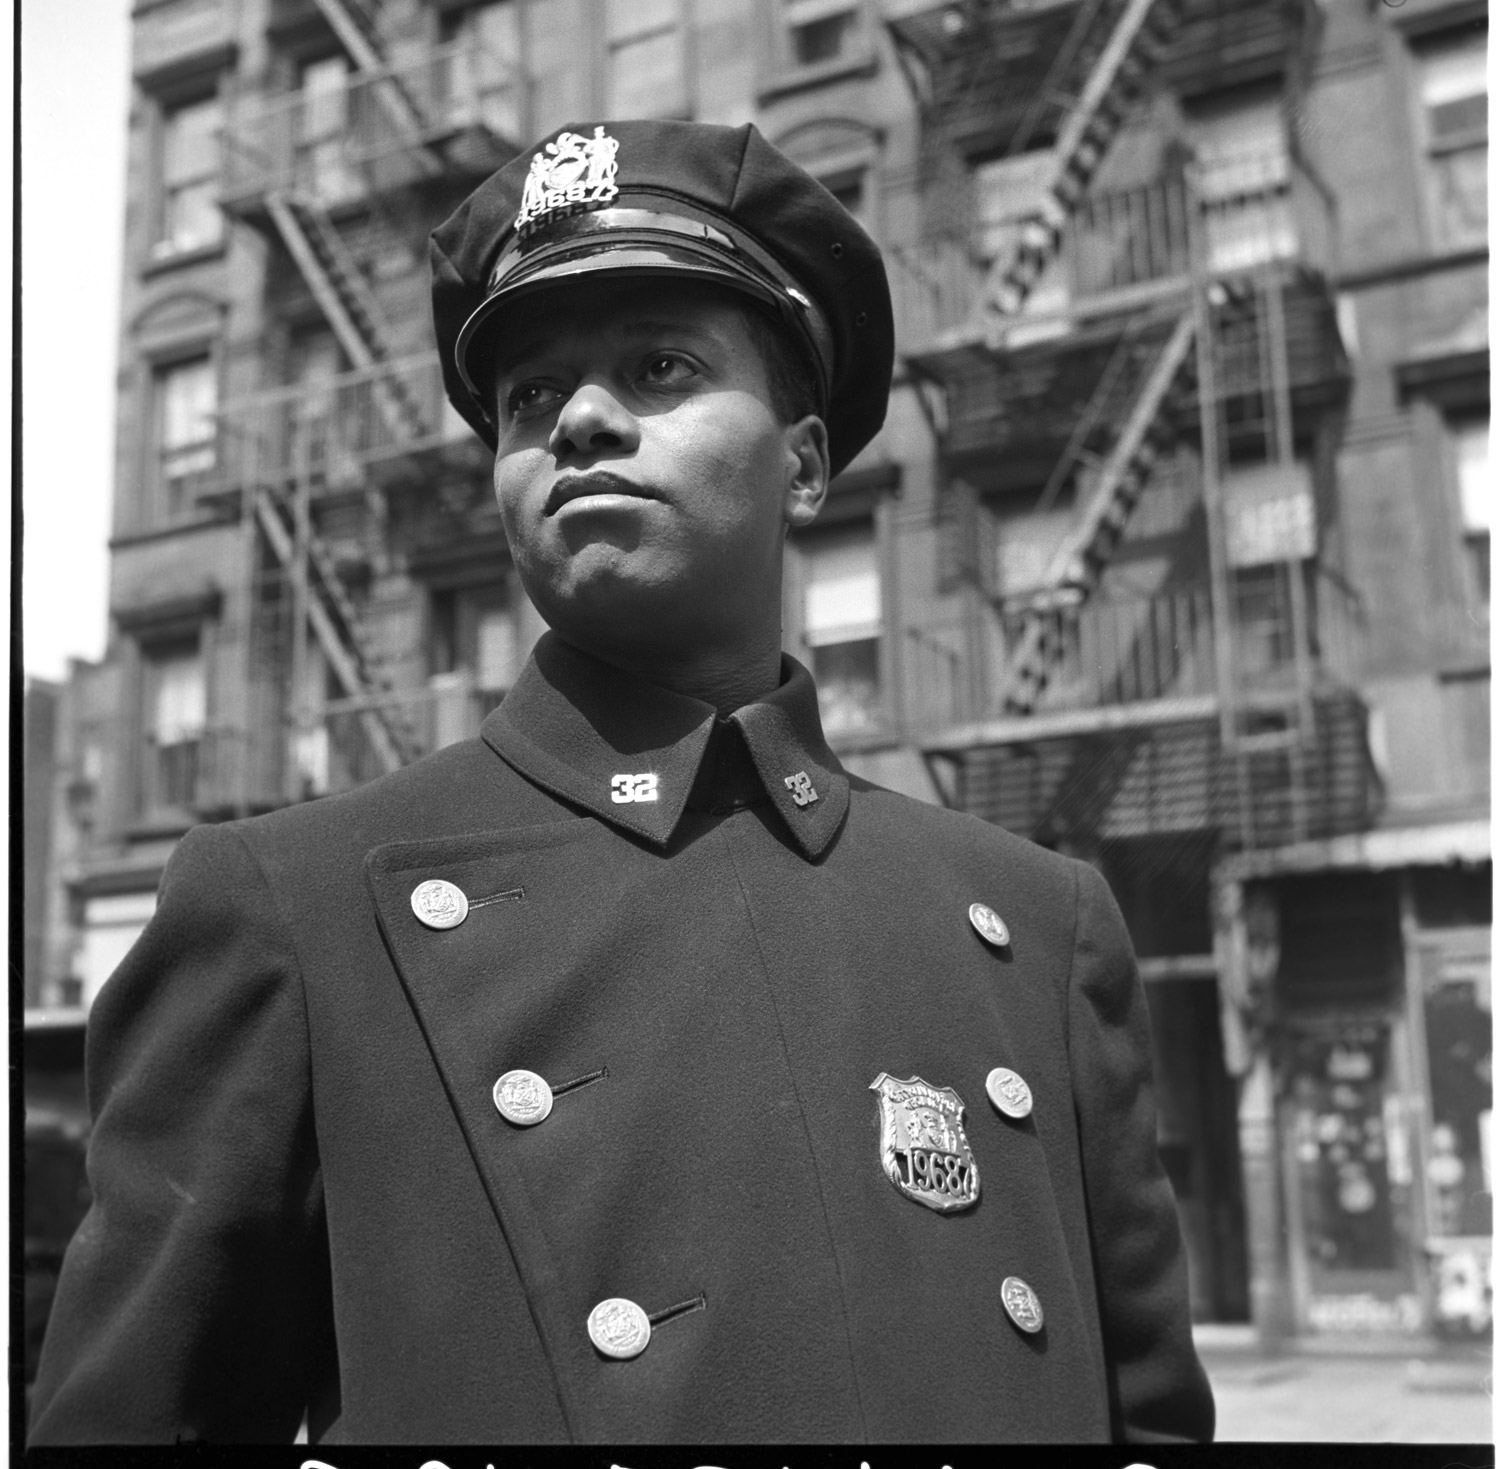 A police man in New York City, May 1943.